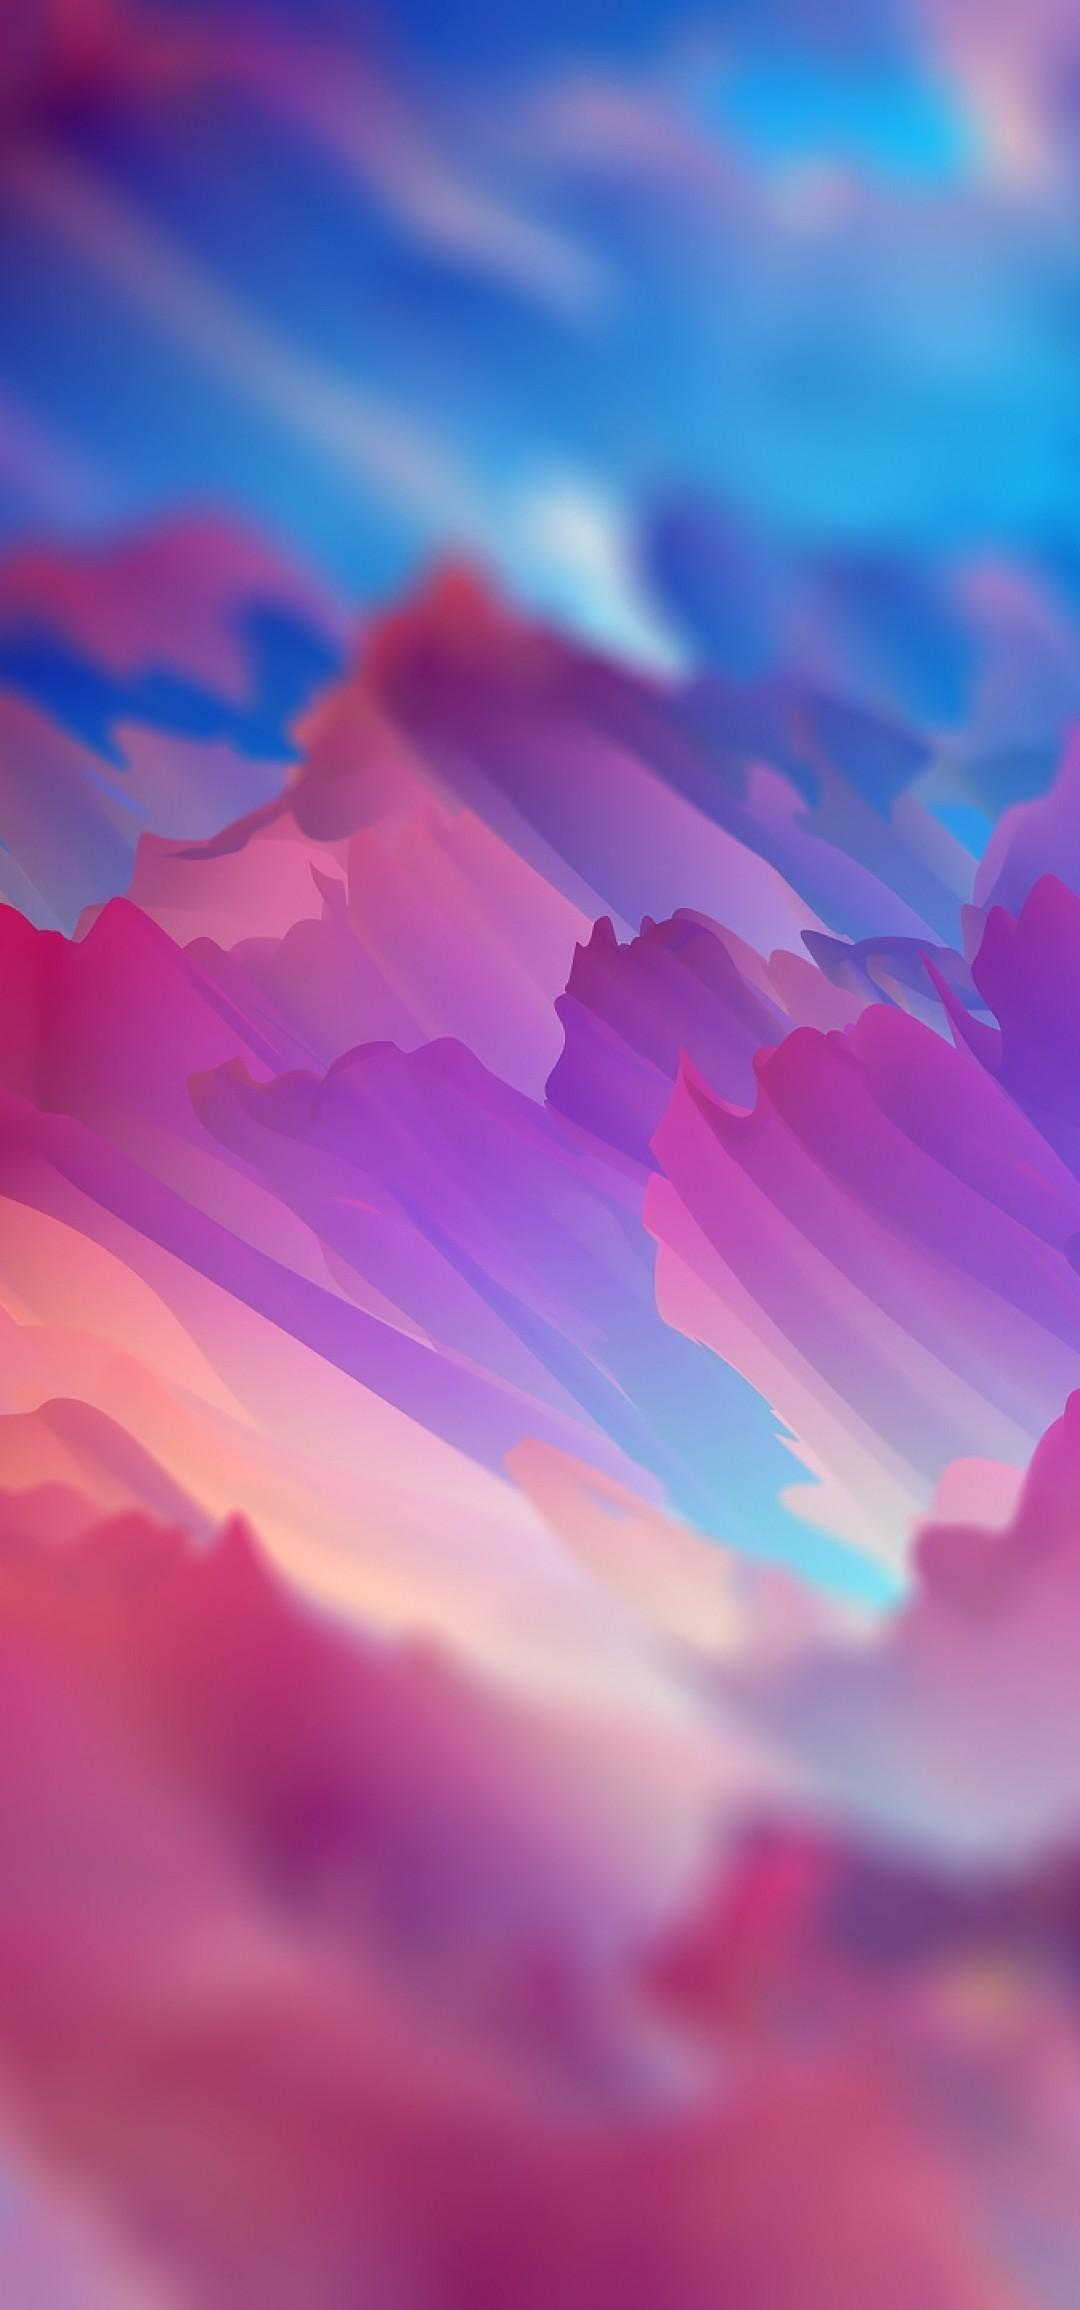 Download 1080x2310 Colorful Clouds, Blurry, Painting Wallpapers for